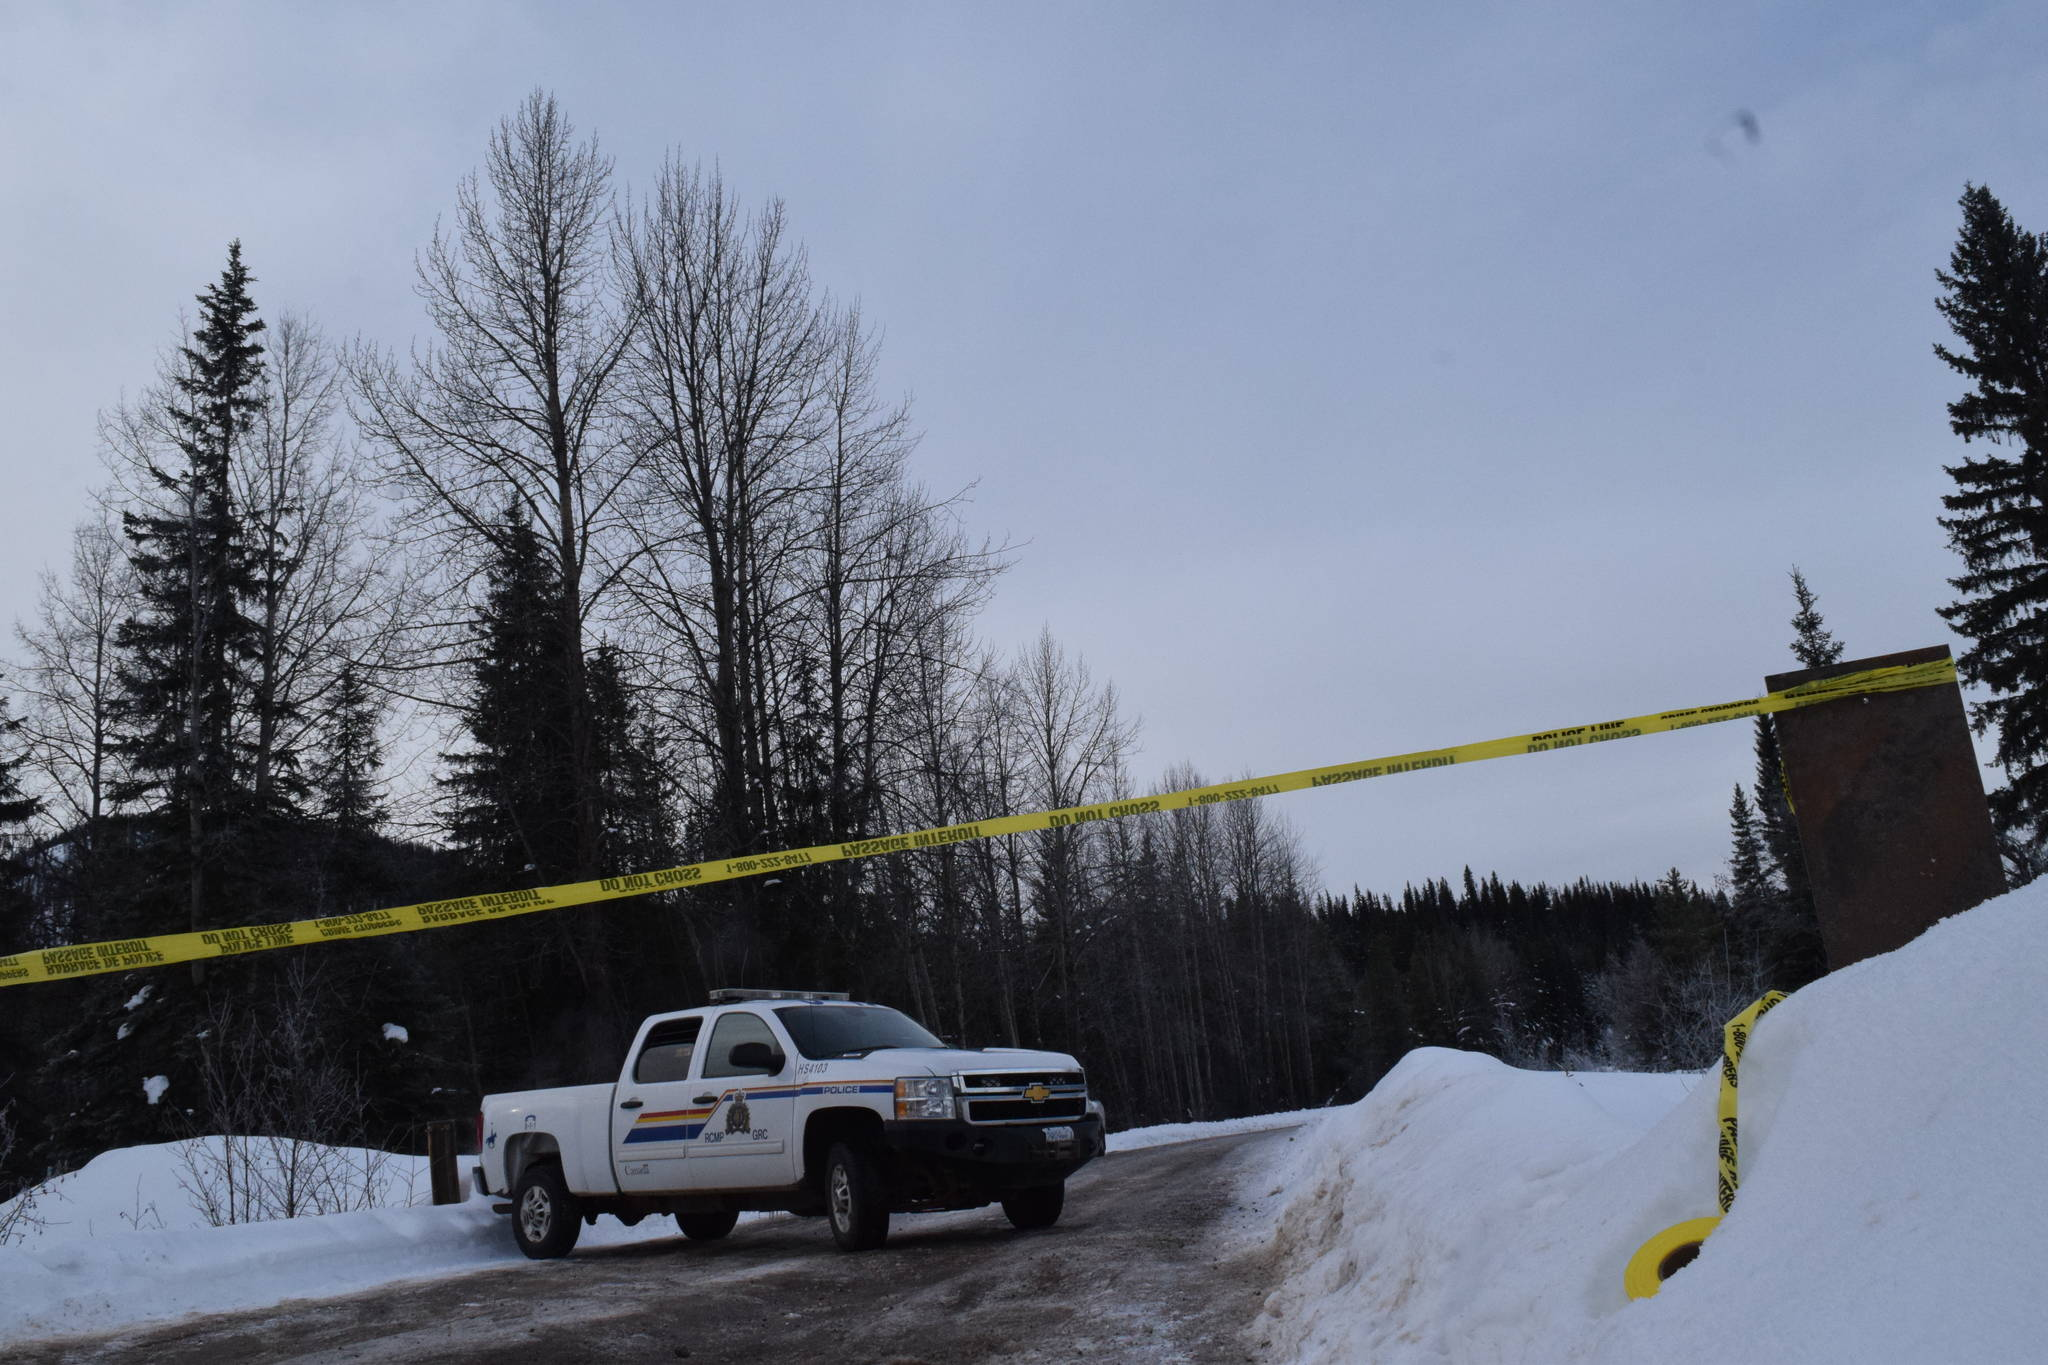 An RCMP truck is pictured at the location of an RCMP exclusion zone at the 27-kilometre point of the Morice West Forest Service Road near Houston, B.C., on Feb. 6, 2020. (Trevor Hewitt photo)